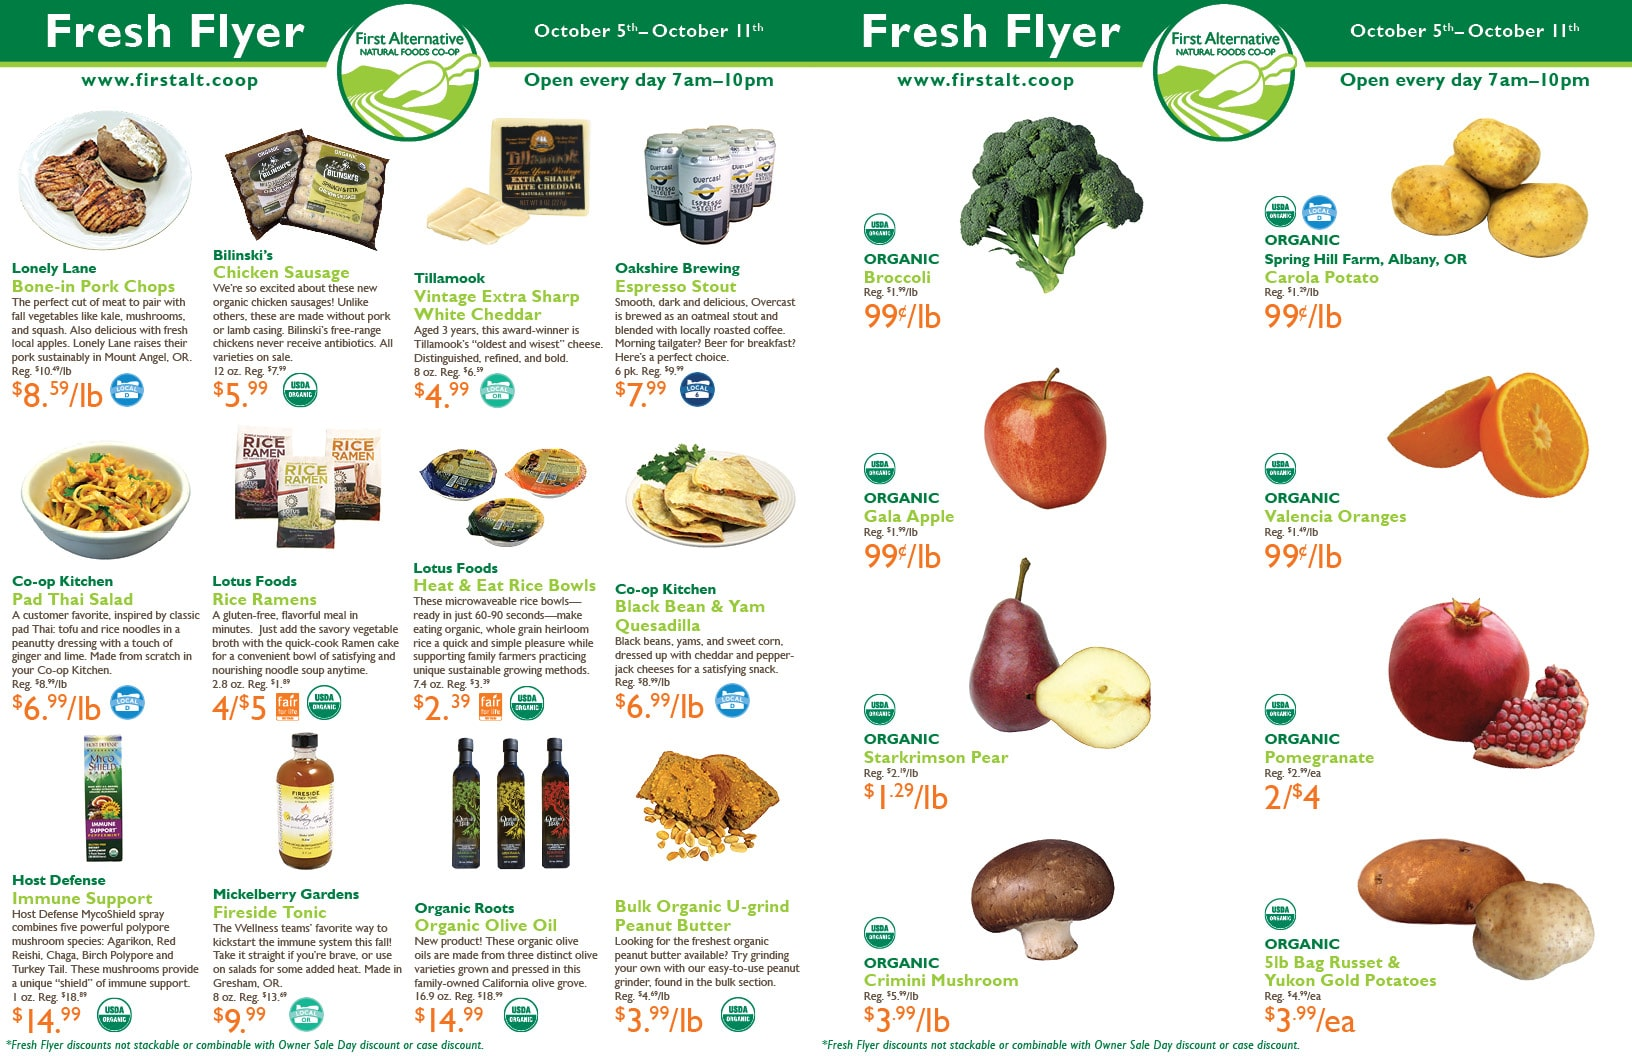 First Alternative Co-op Fresh Flyer October 5-11